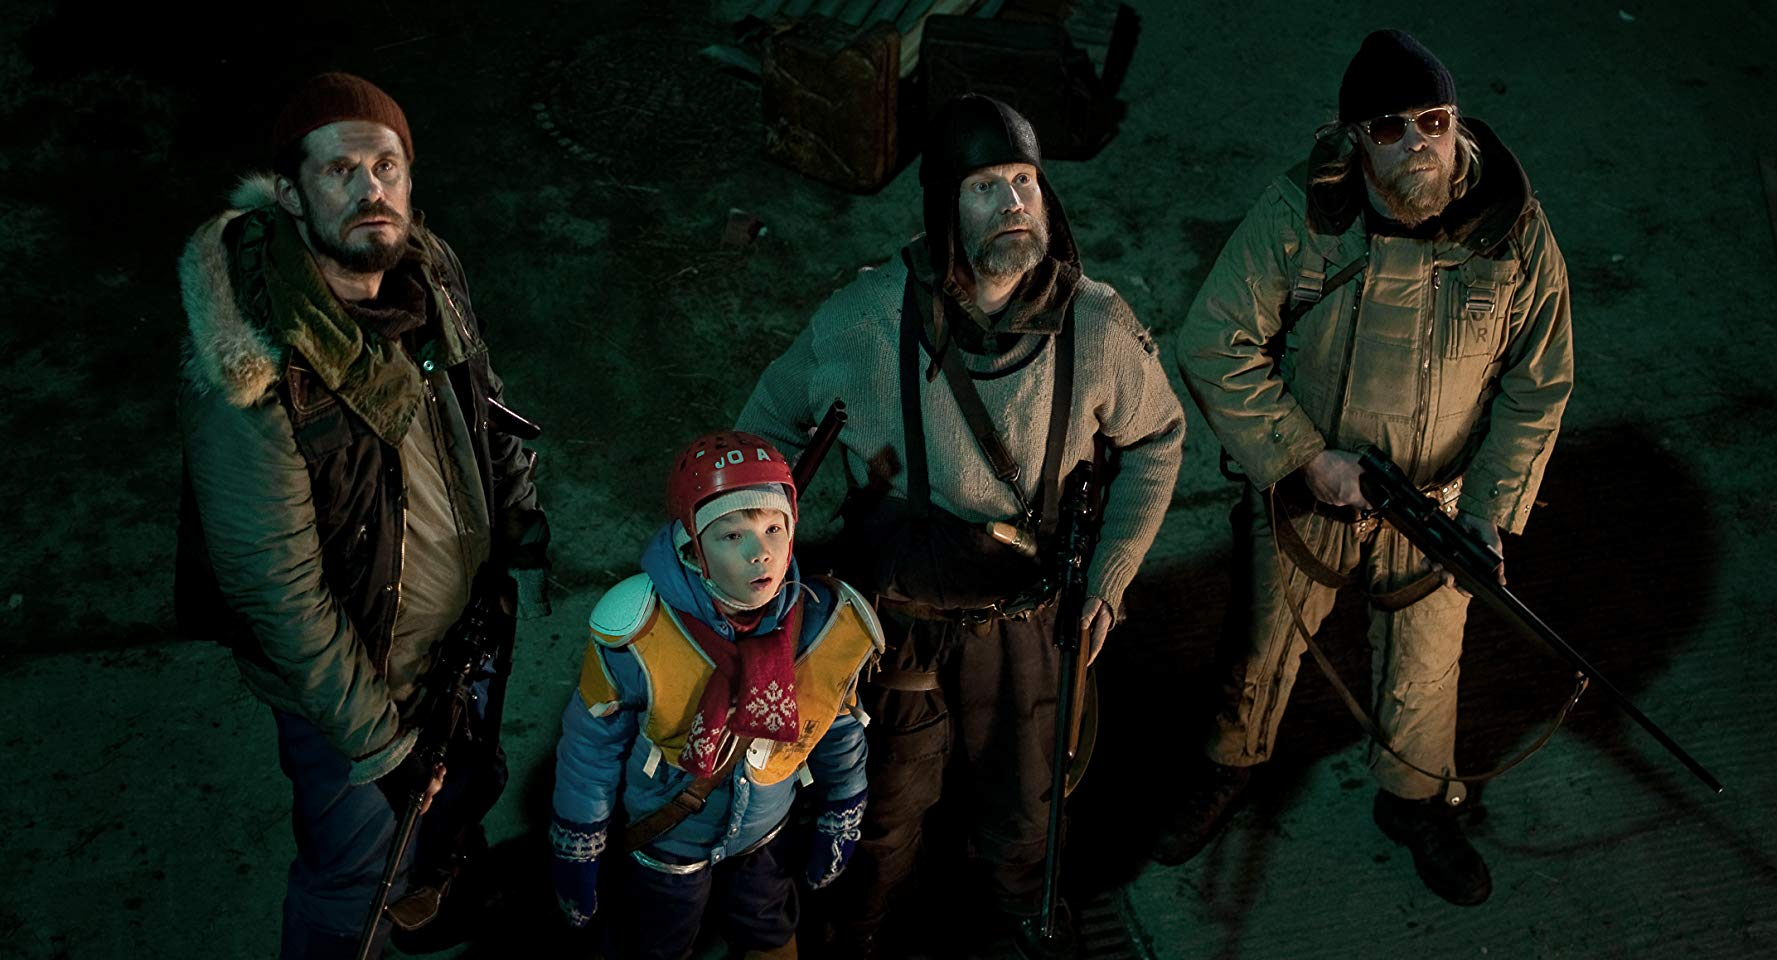 Tommi Korpela, Onni Tommila, Jorma Tommila, Rauno Juvonen deal with a rampaging Santa monster in Rare Exports (2010)